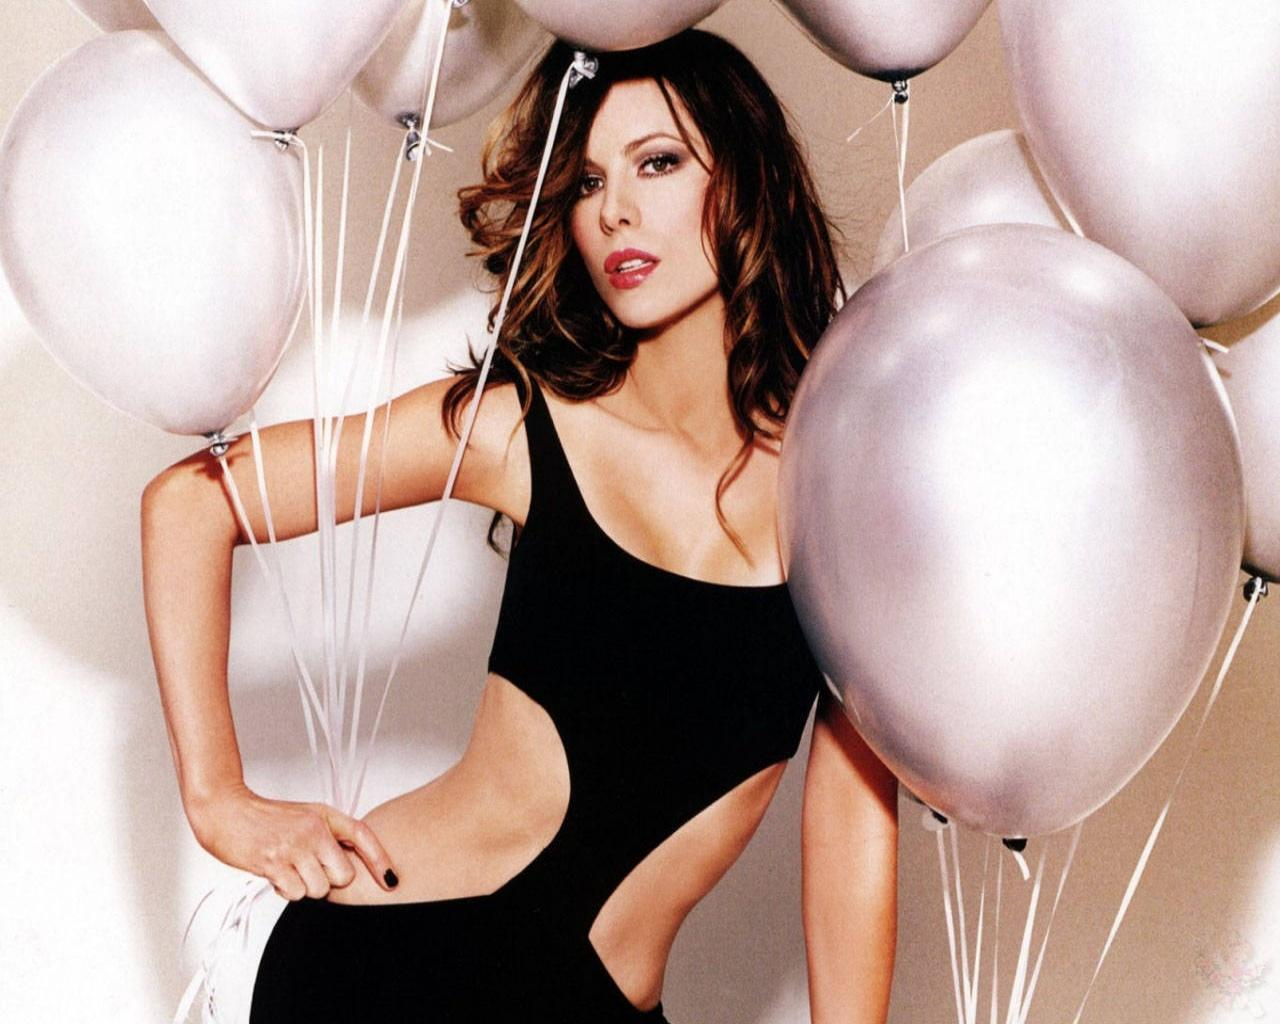 http://1.bp.blogspot.com/-TDzka4QmQzo/Tycw4-KhPqI/AAAAAAAAIdQ/uNoKBjv6Y7E/s1600/actress_kat_beckinsale_hot_wallpaper_06.jpg